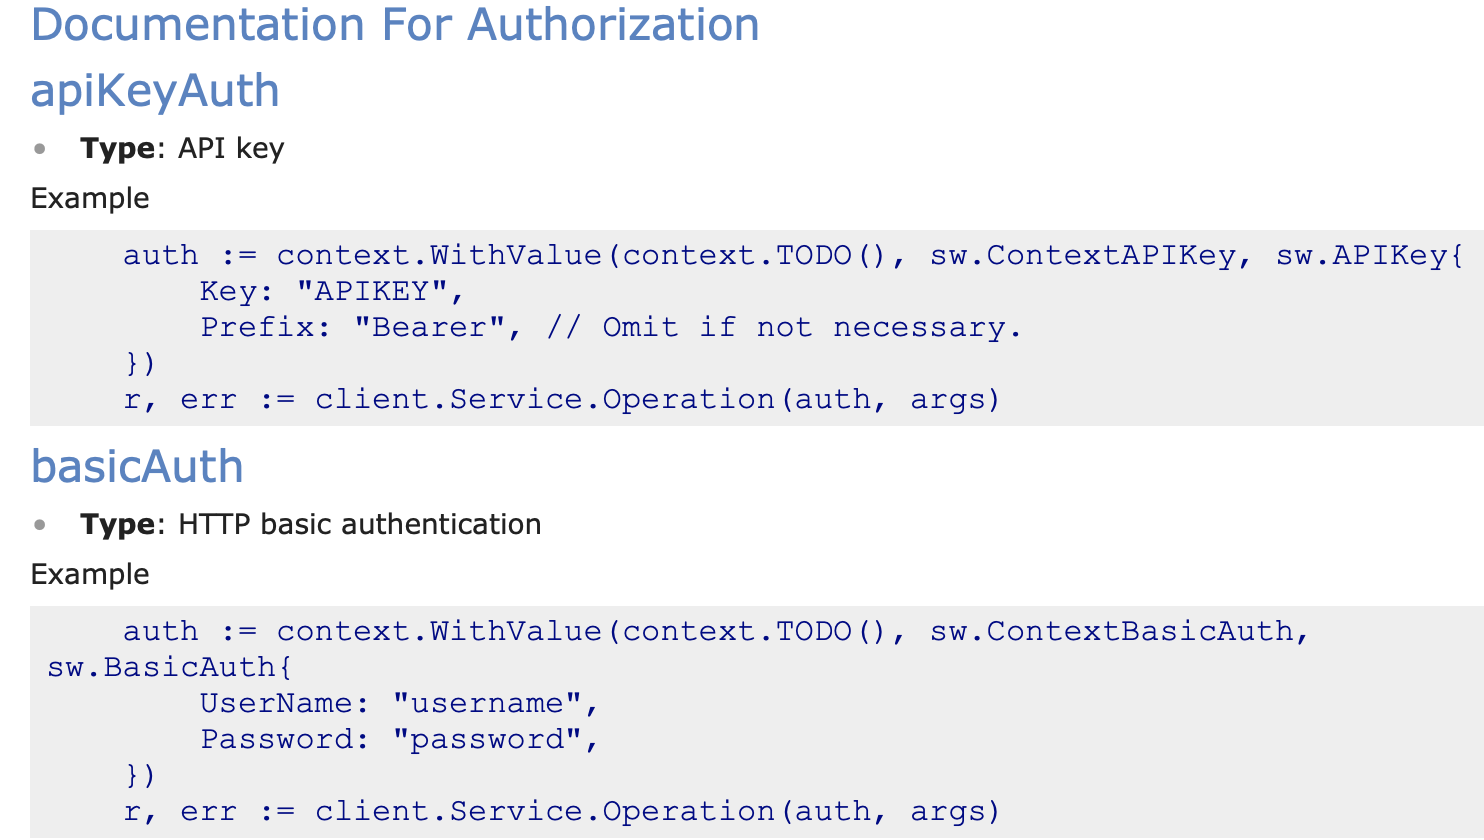 rust client] Generated README auth section is for Go, not Rust